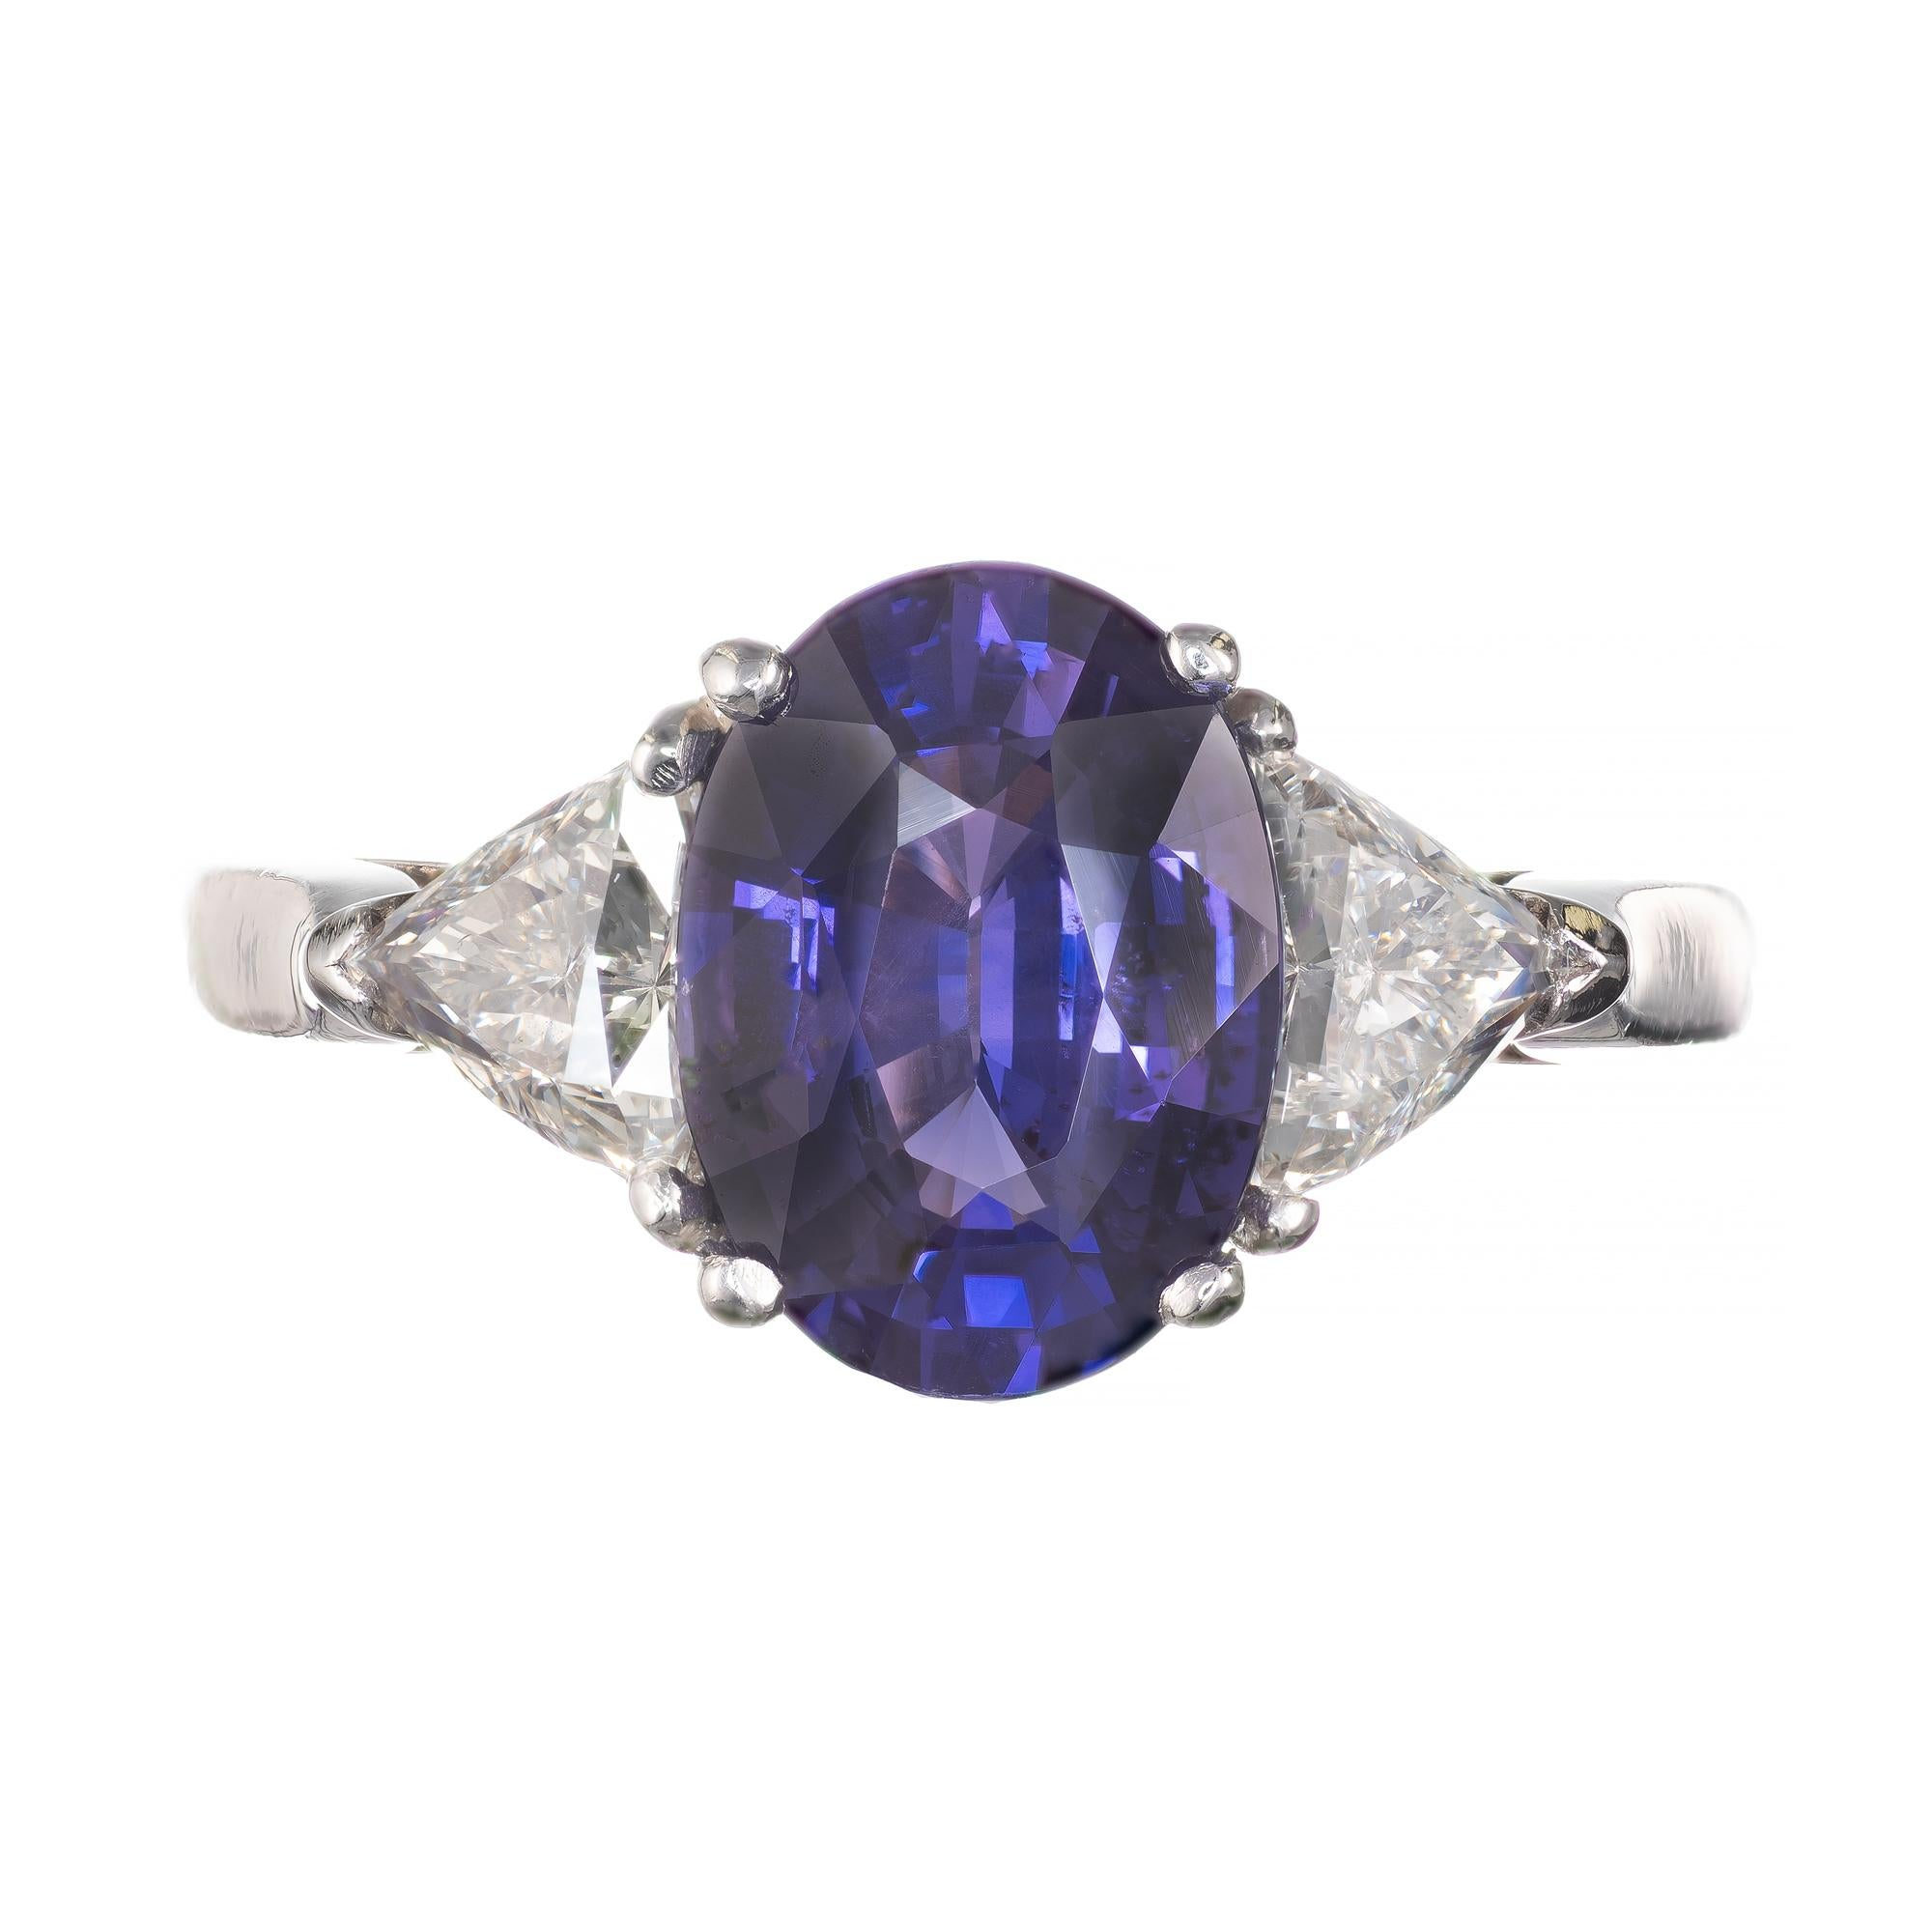 Peter Suchy GIA Certified 3.48 Carat Sapphire Diamond Platinum Engagement Ring